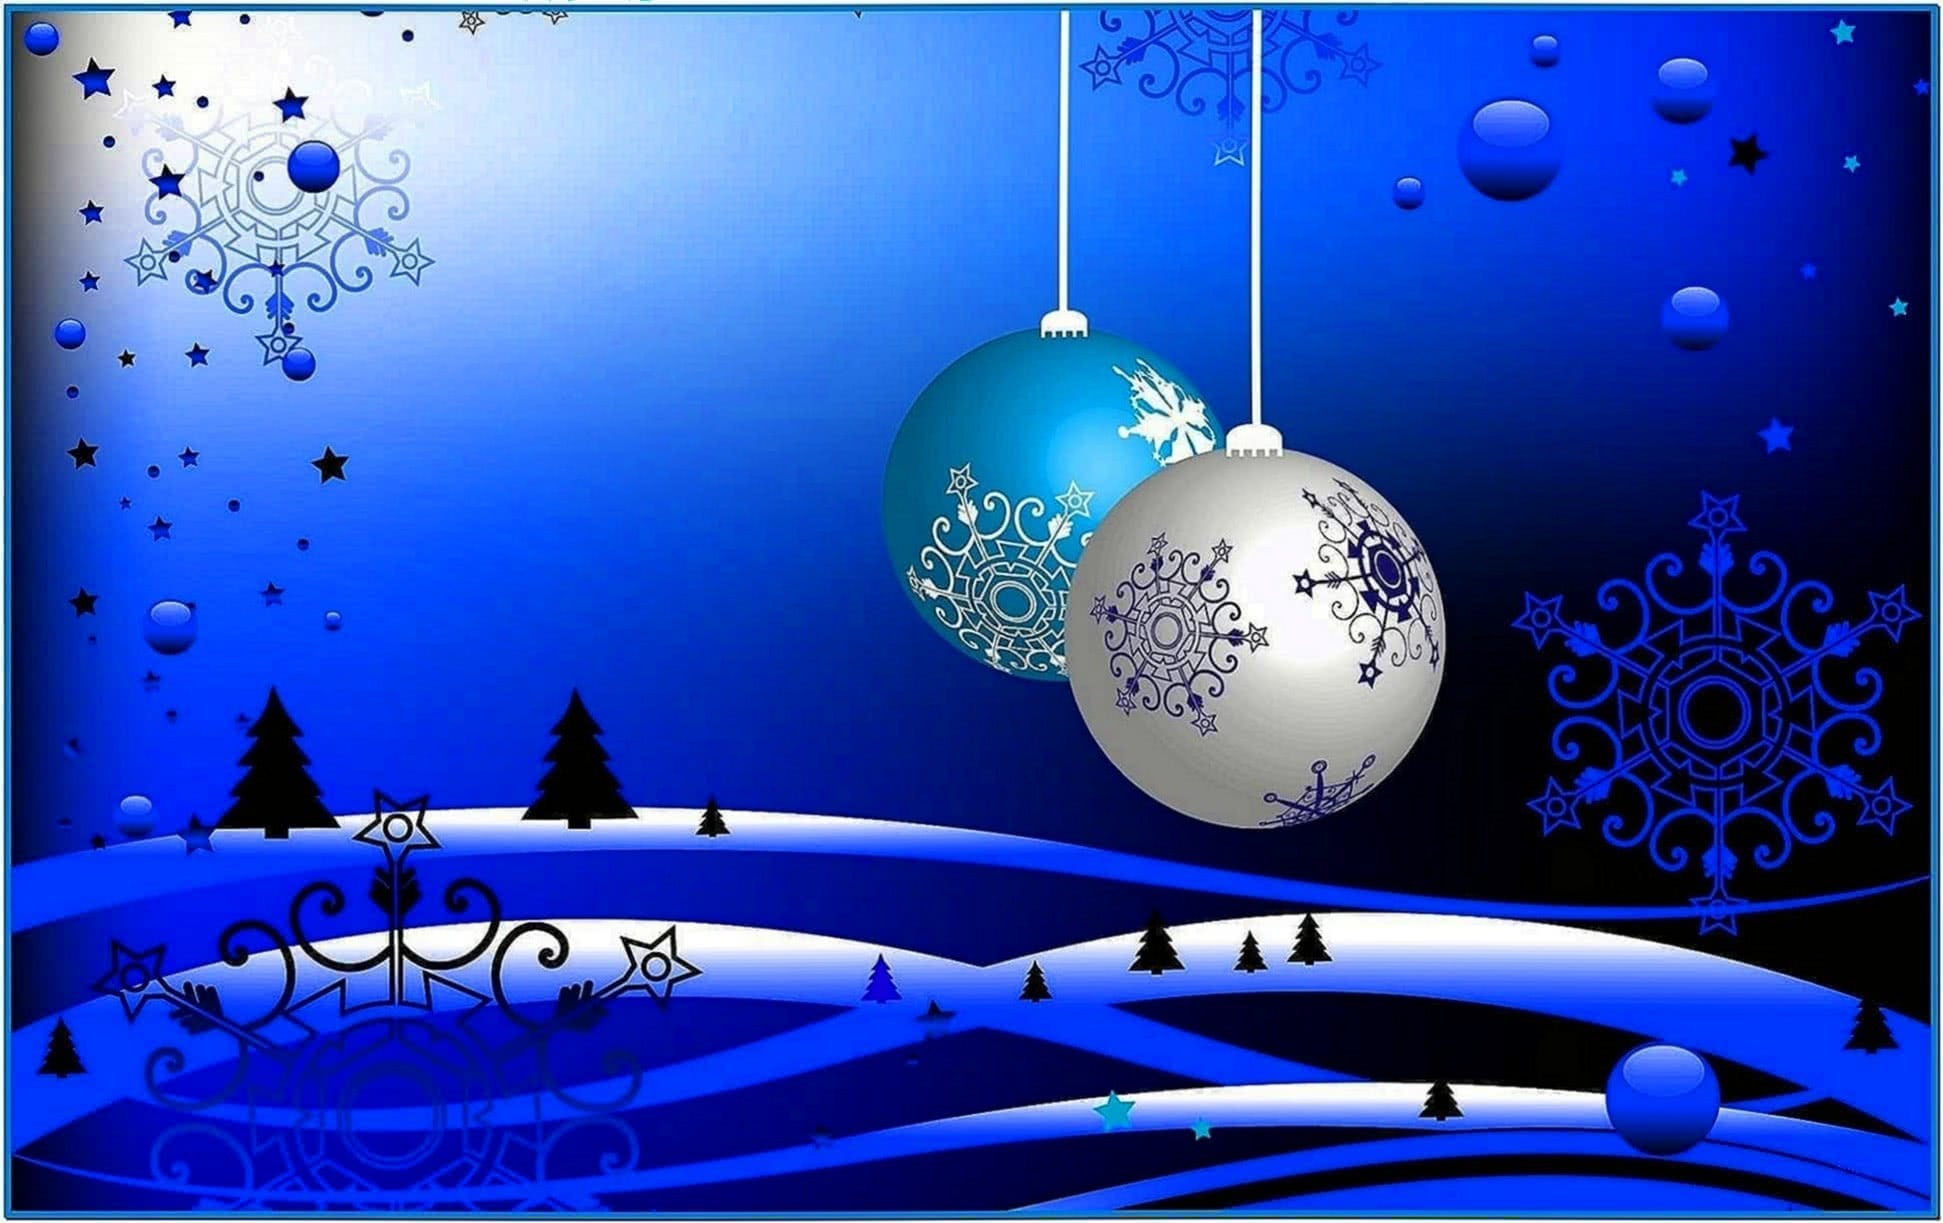 Christmas Desktop Backgrounds Screensavers